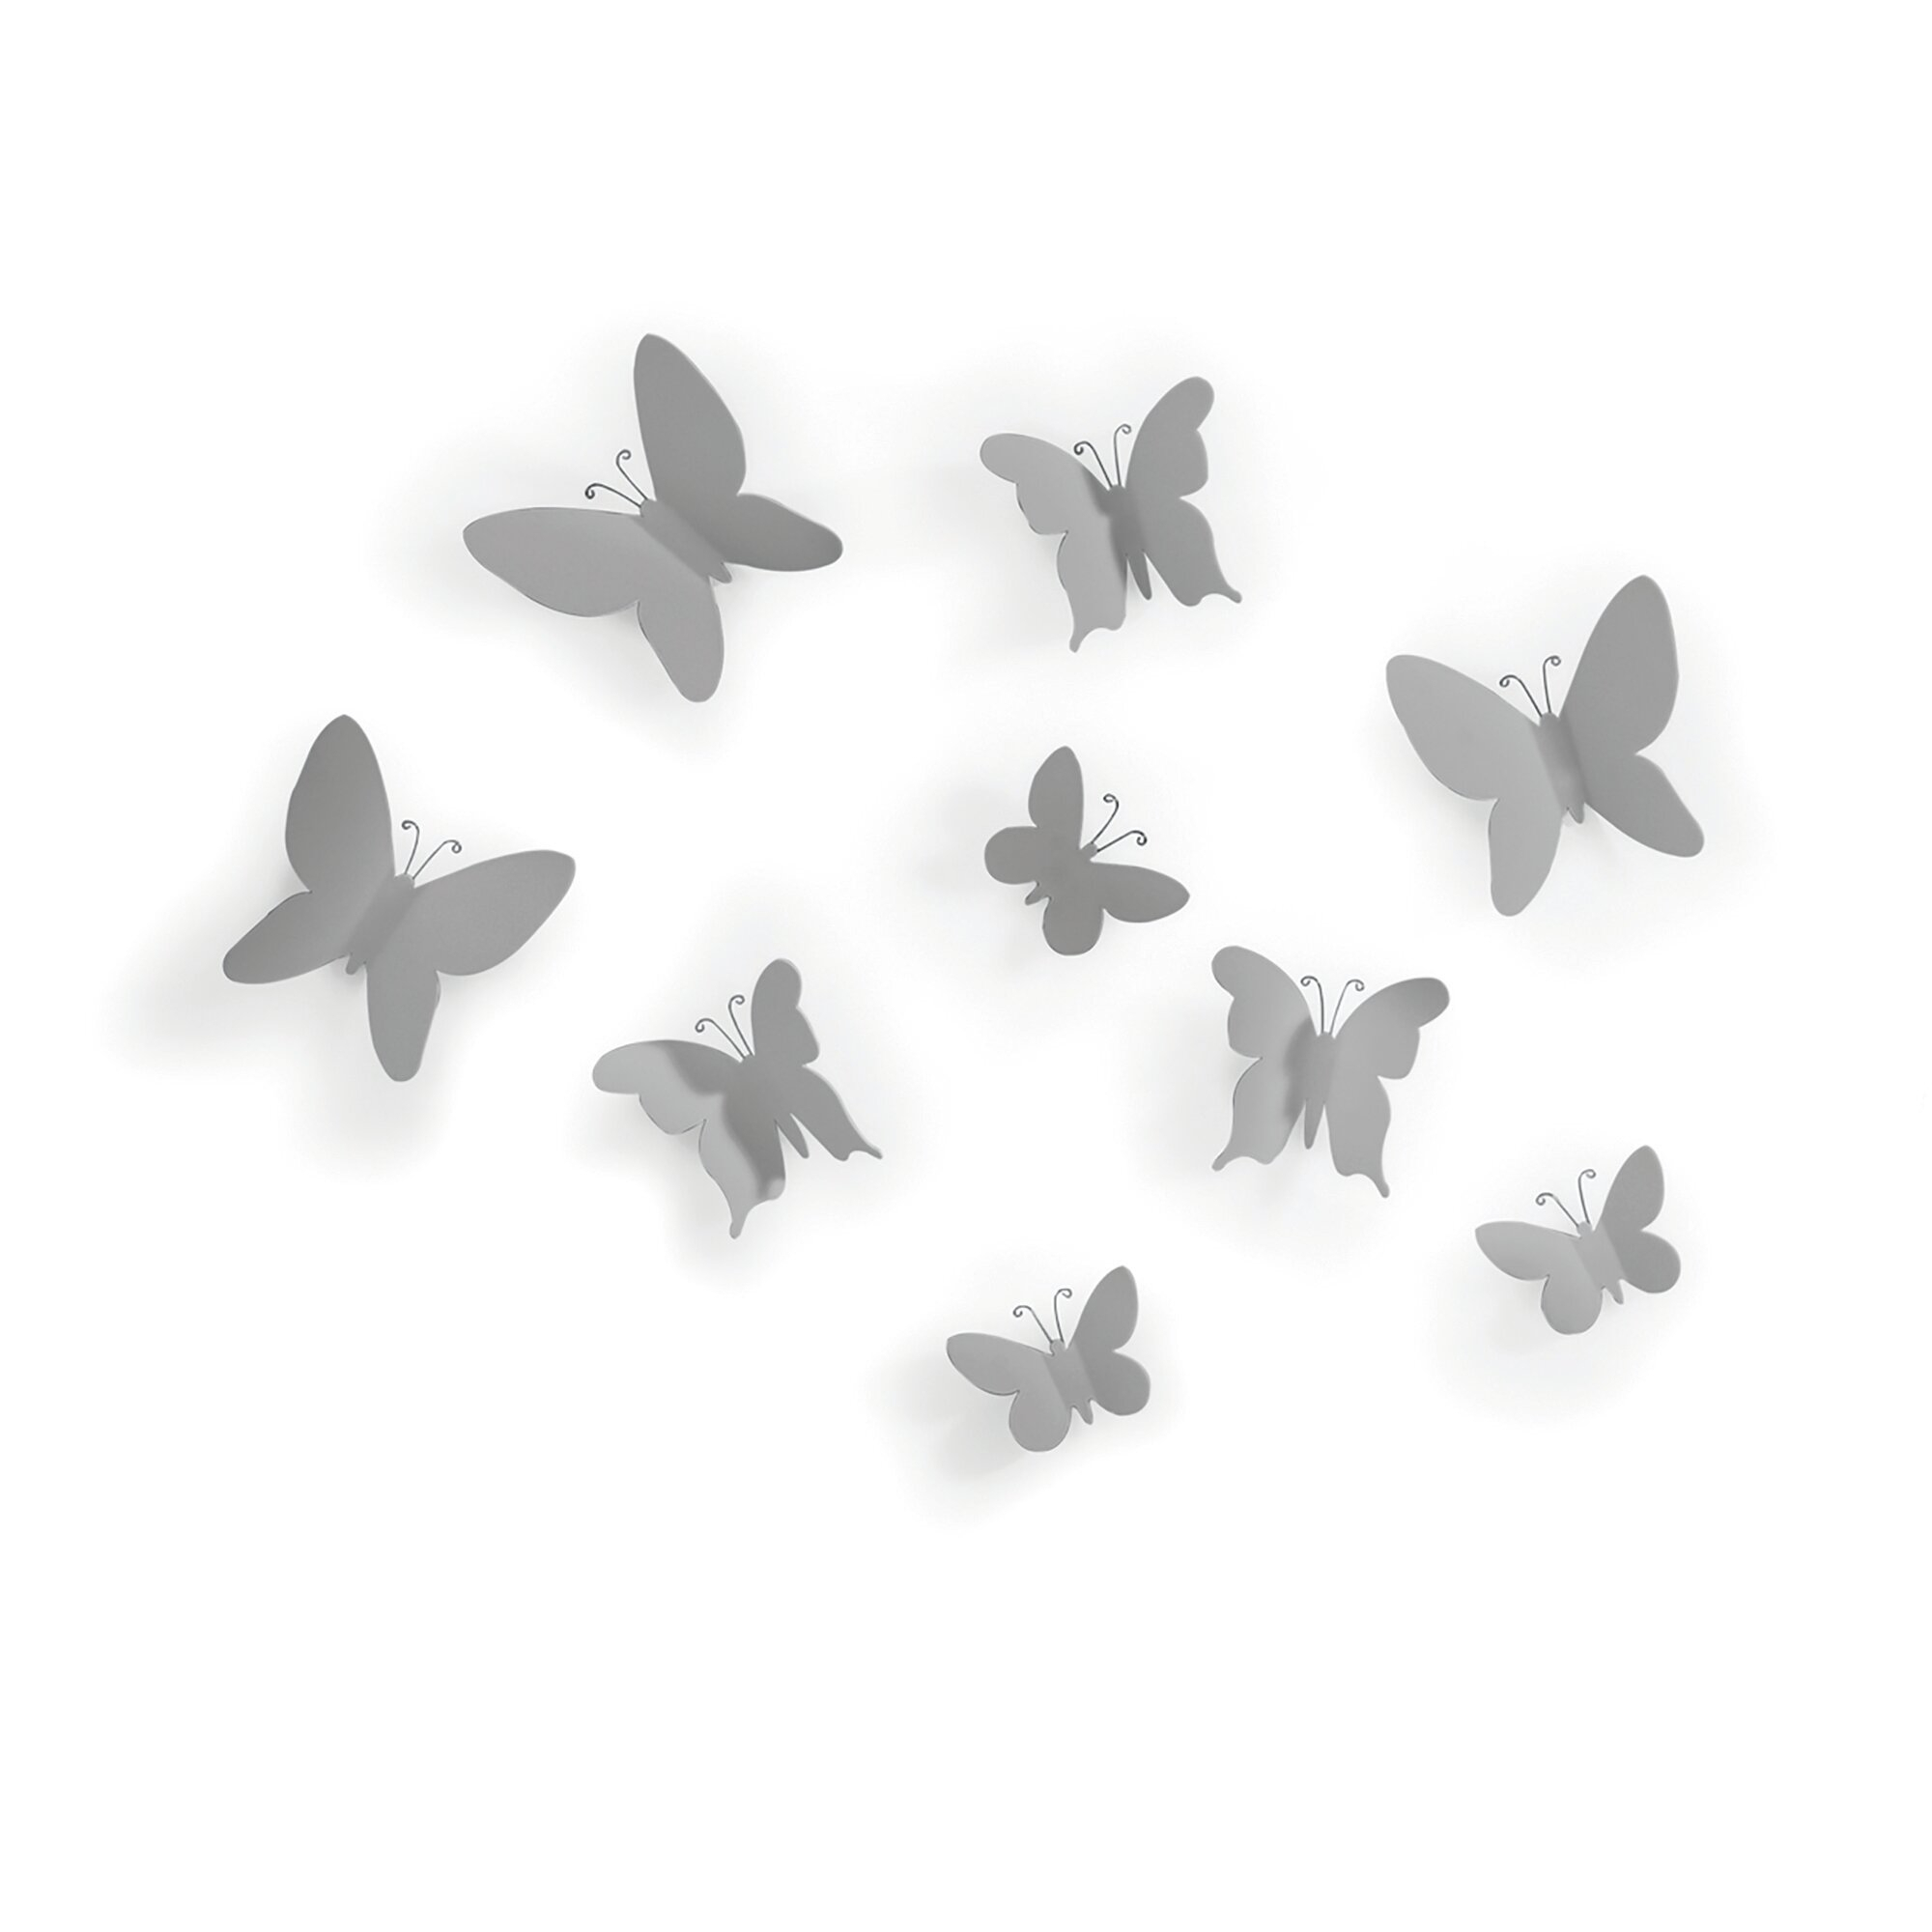 Umbra Mariposa 9 Piece Wall Decor Set with Mariposa 9 Piece Wall Decor (Image 24 of 30)